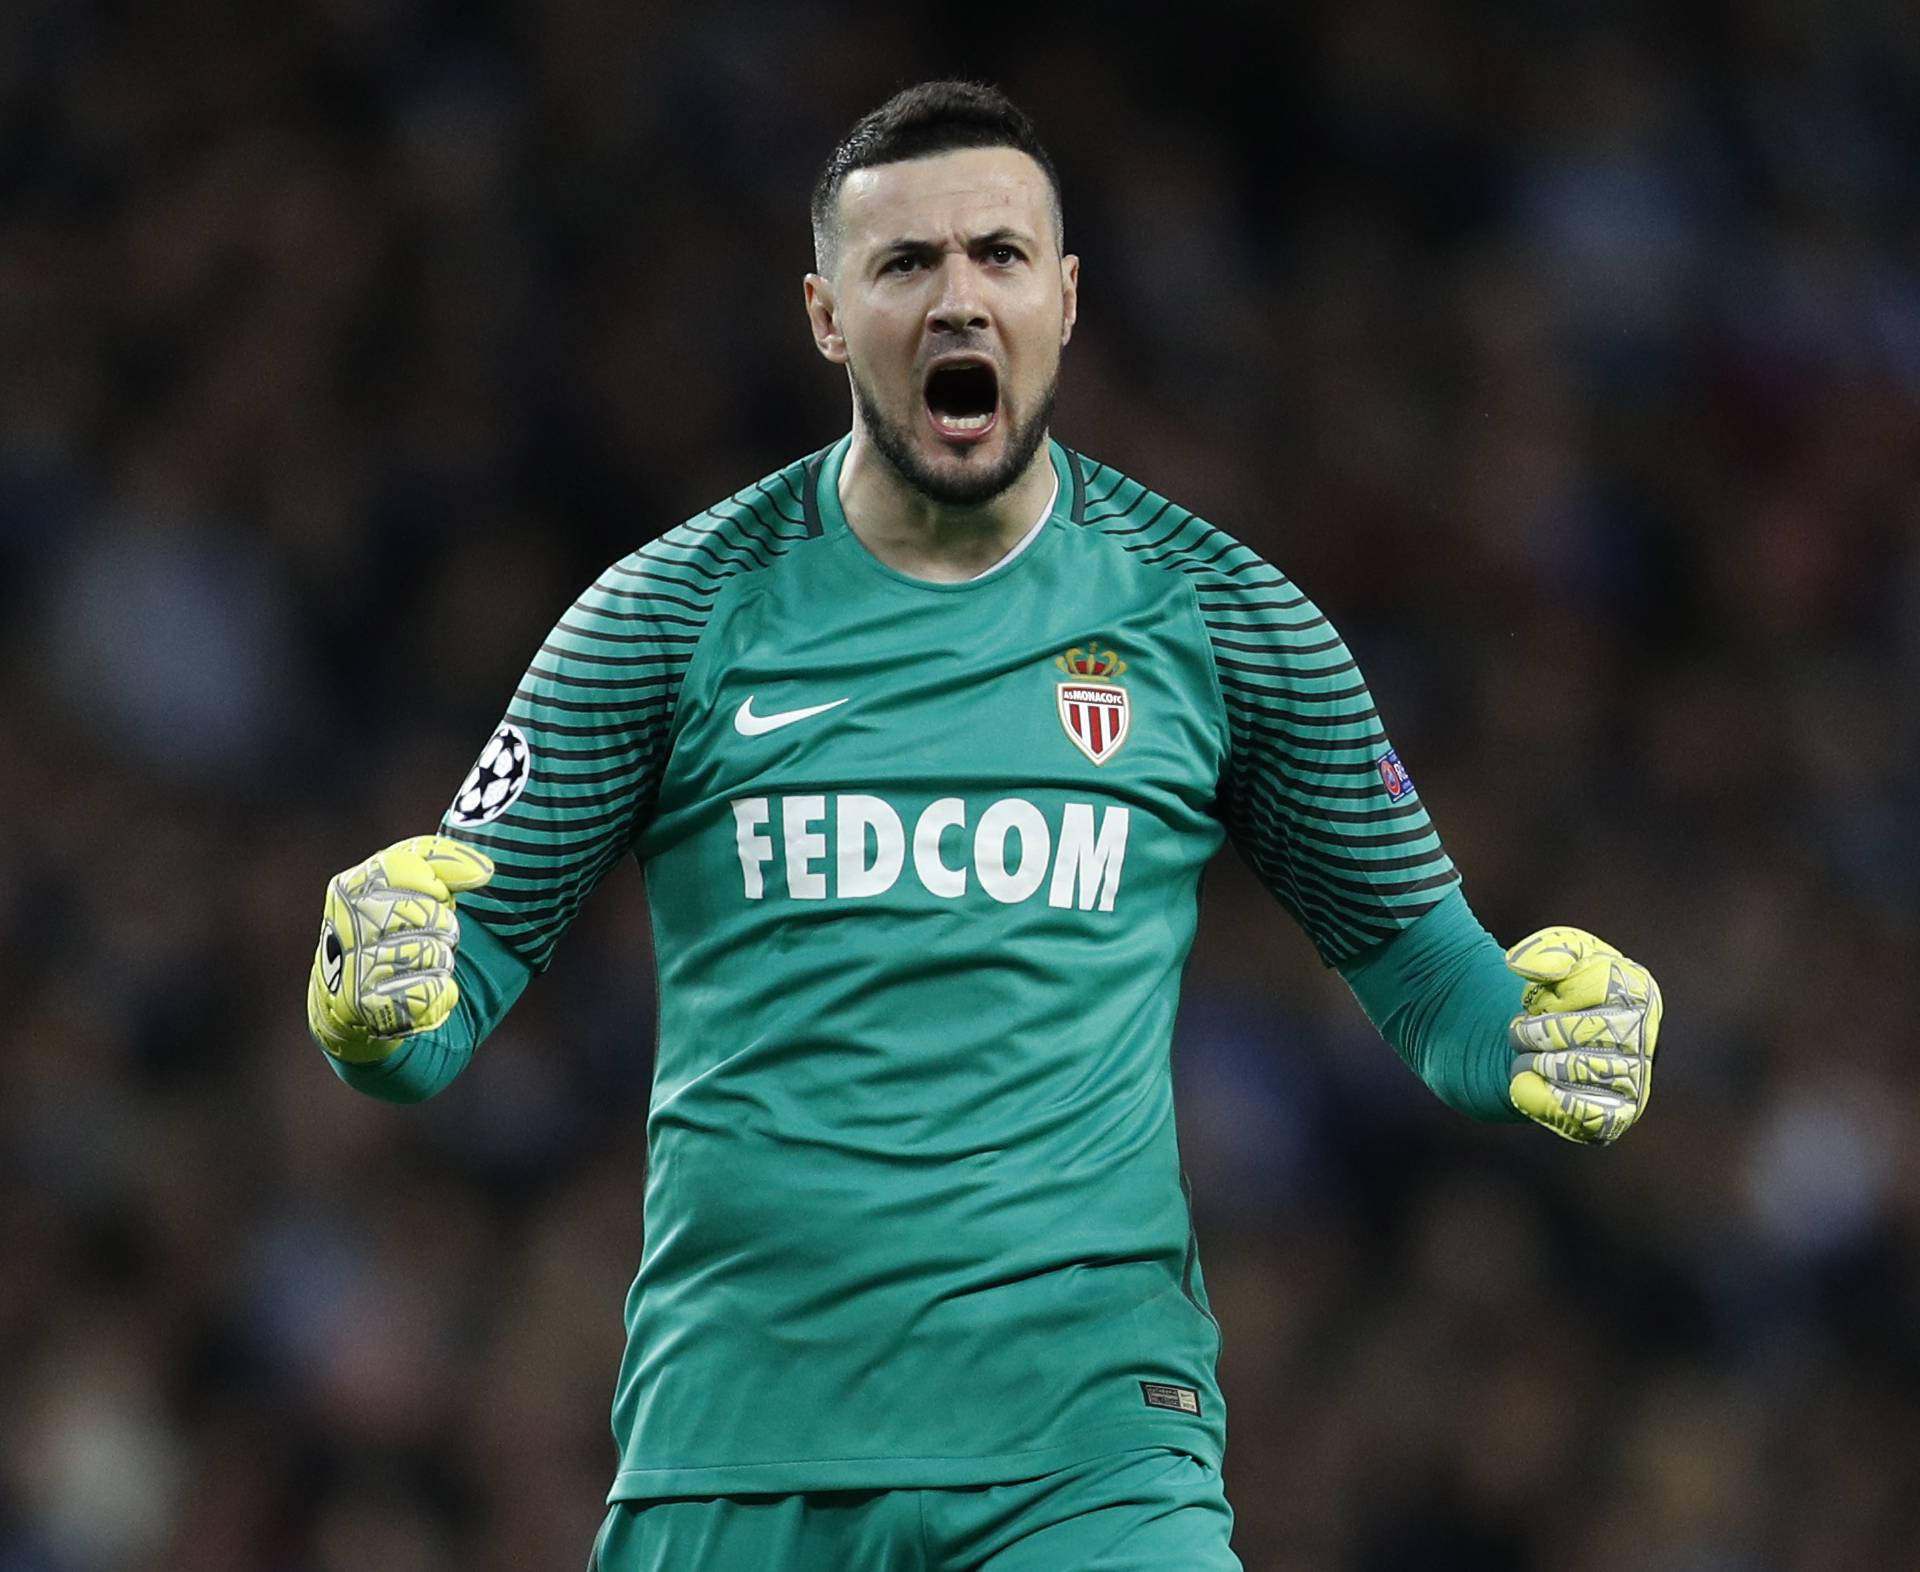 Monaco's Danijel Subasic celebrates their first goal